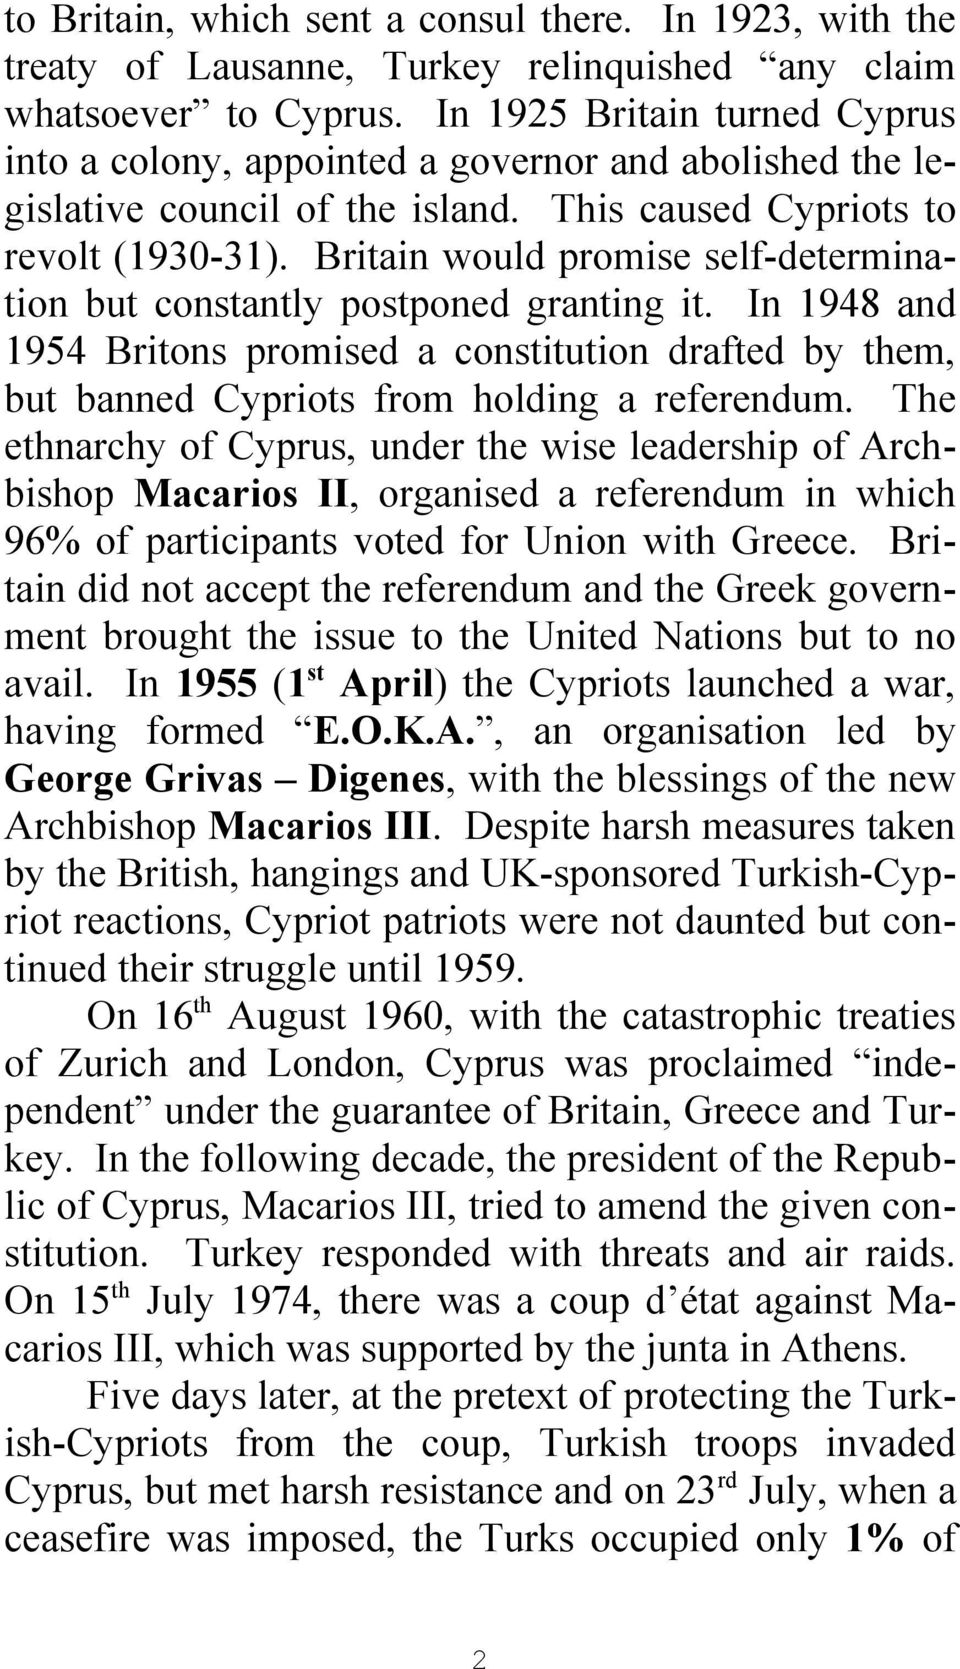 Britain would promise self-determination but constantly postponed granting it. In 1948 and 1954 Britons promised a constitution drafted by them, but banned Cypriots from holding a referendum.